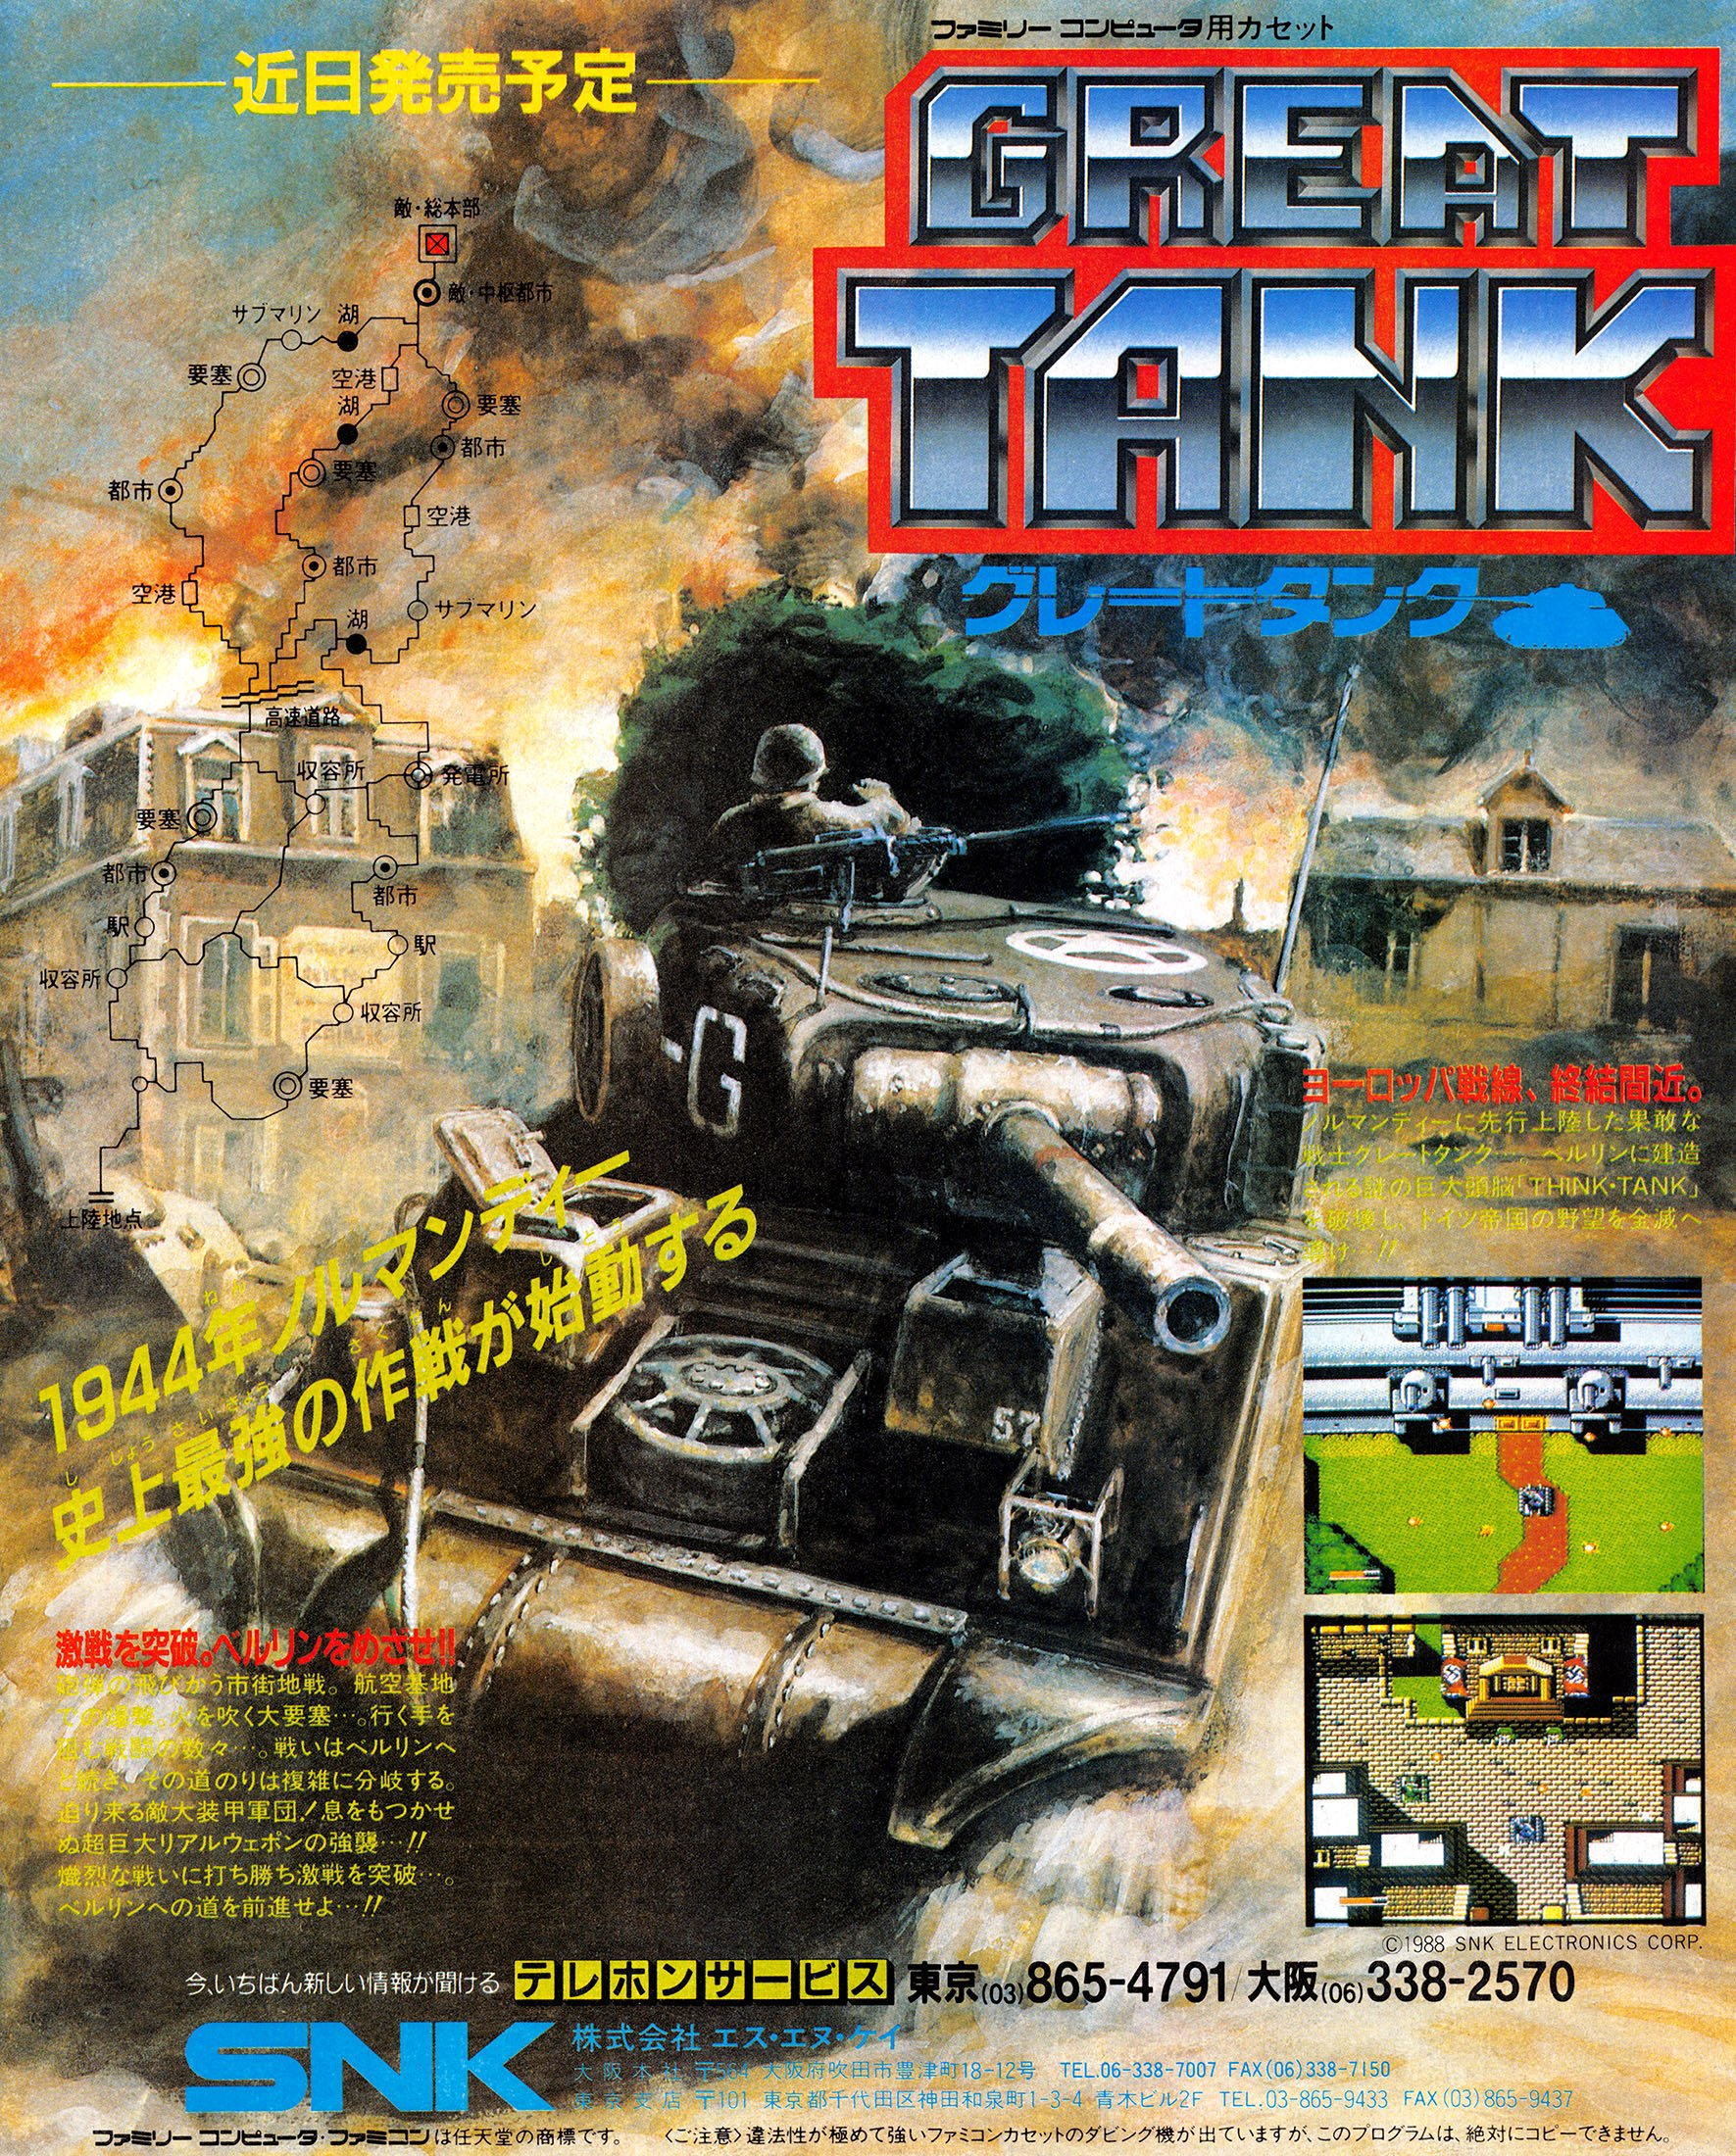 Iron Tank: The Invasion of Normandy (Great Tank) (Japan)